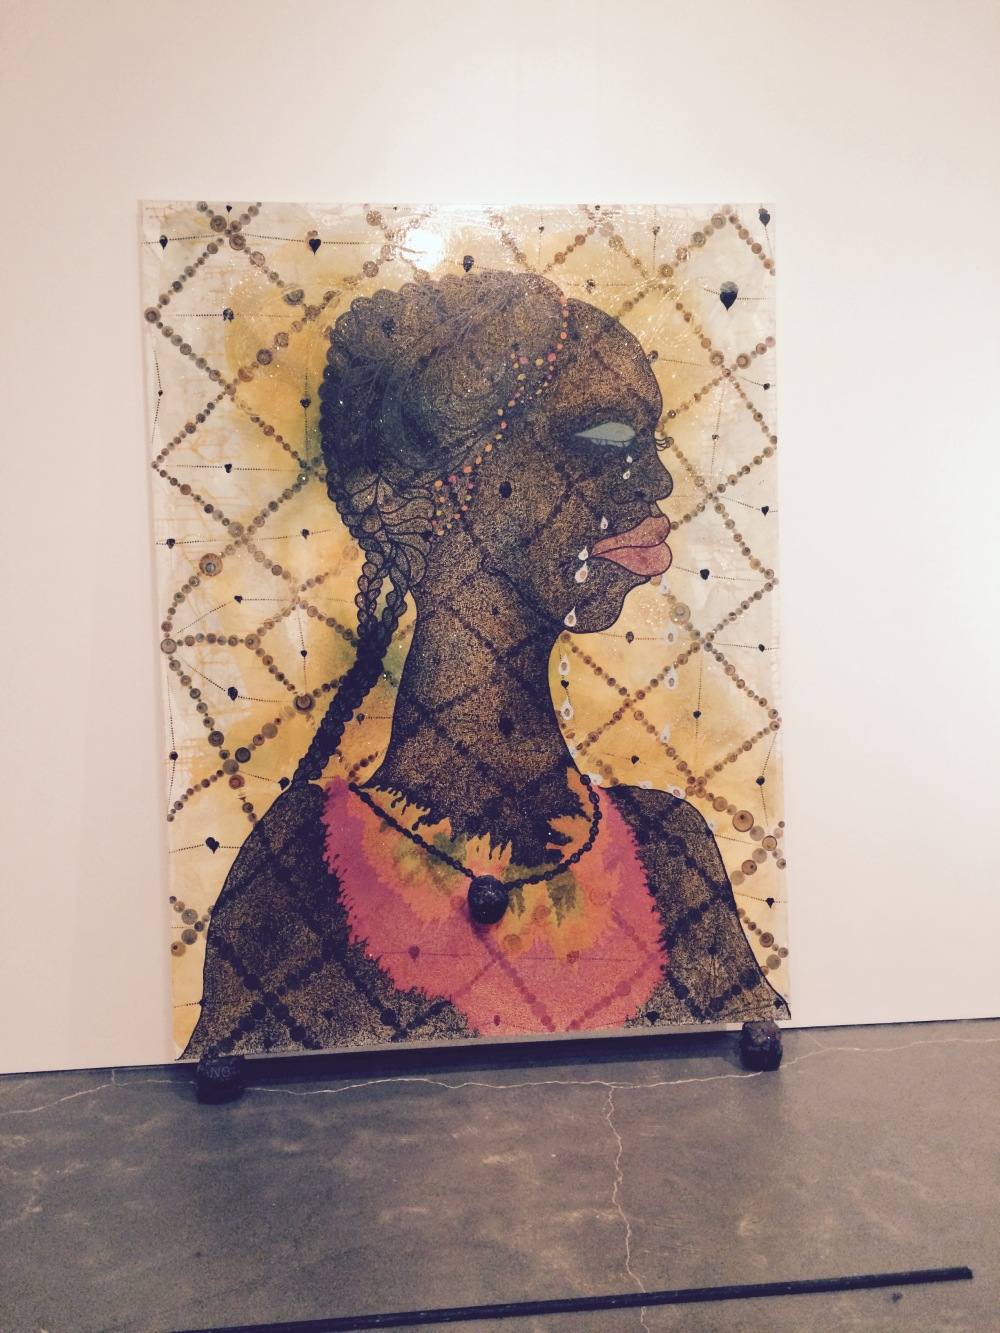 Chris Ofili's No Woman, No Cry 1998